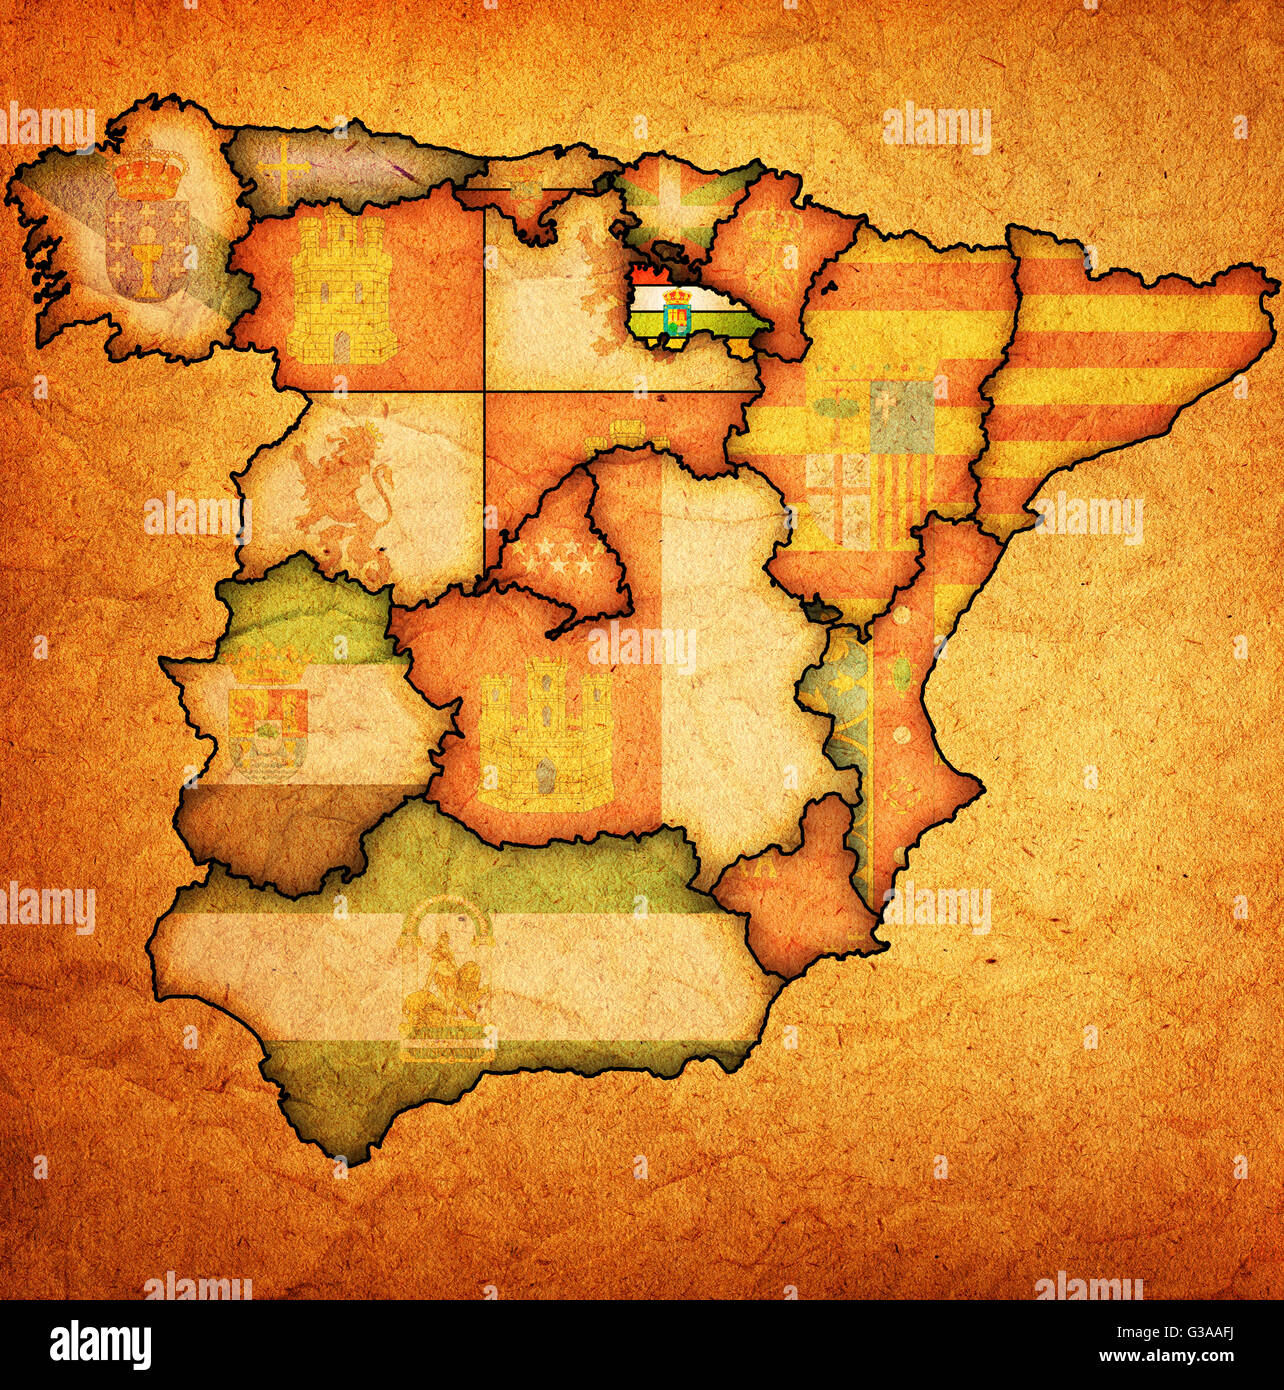 Rioja Region Spain Map.La Rioja Region On Administration Map Of Regions Of Spain With Flags